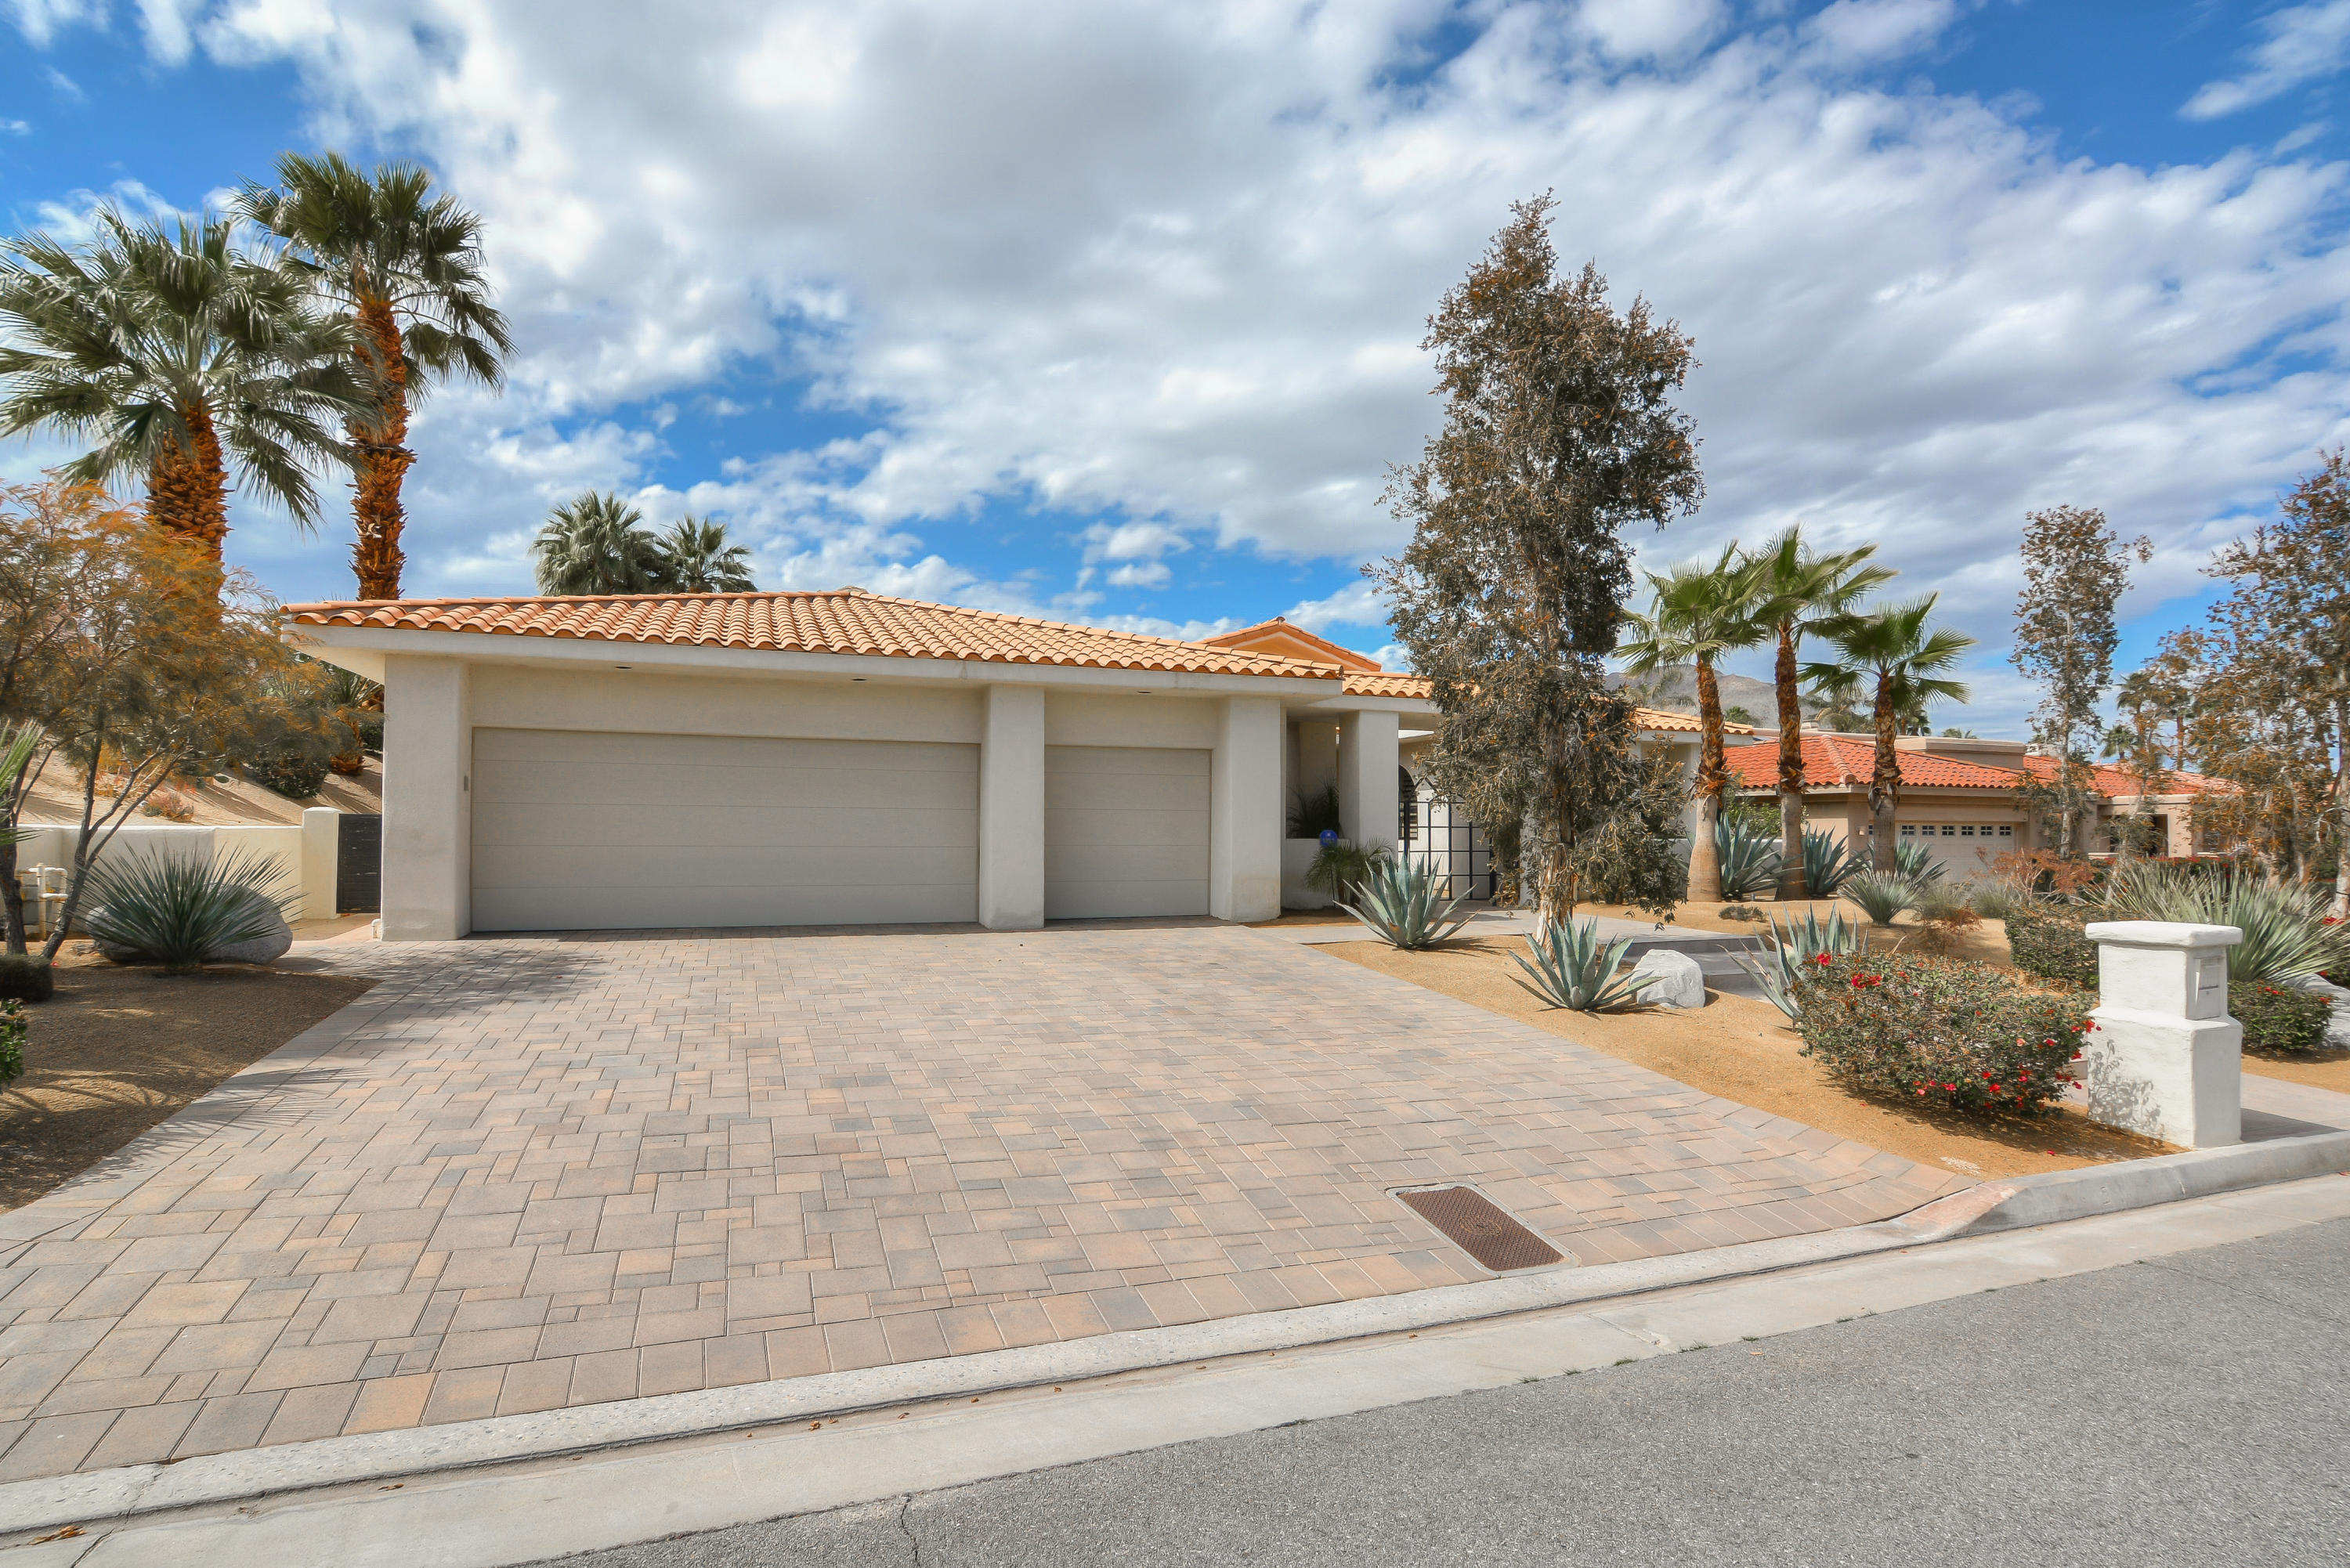 48571 N View Drive, Palm Desert, California 92260, 4 Bedrooms Bedrooms, ,3 BathroomsBathrooms,Residential,For Sale,48571 N View Drive,219037605